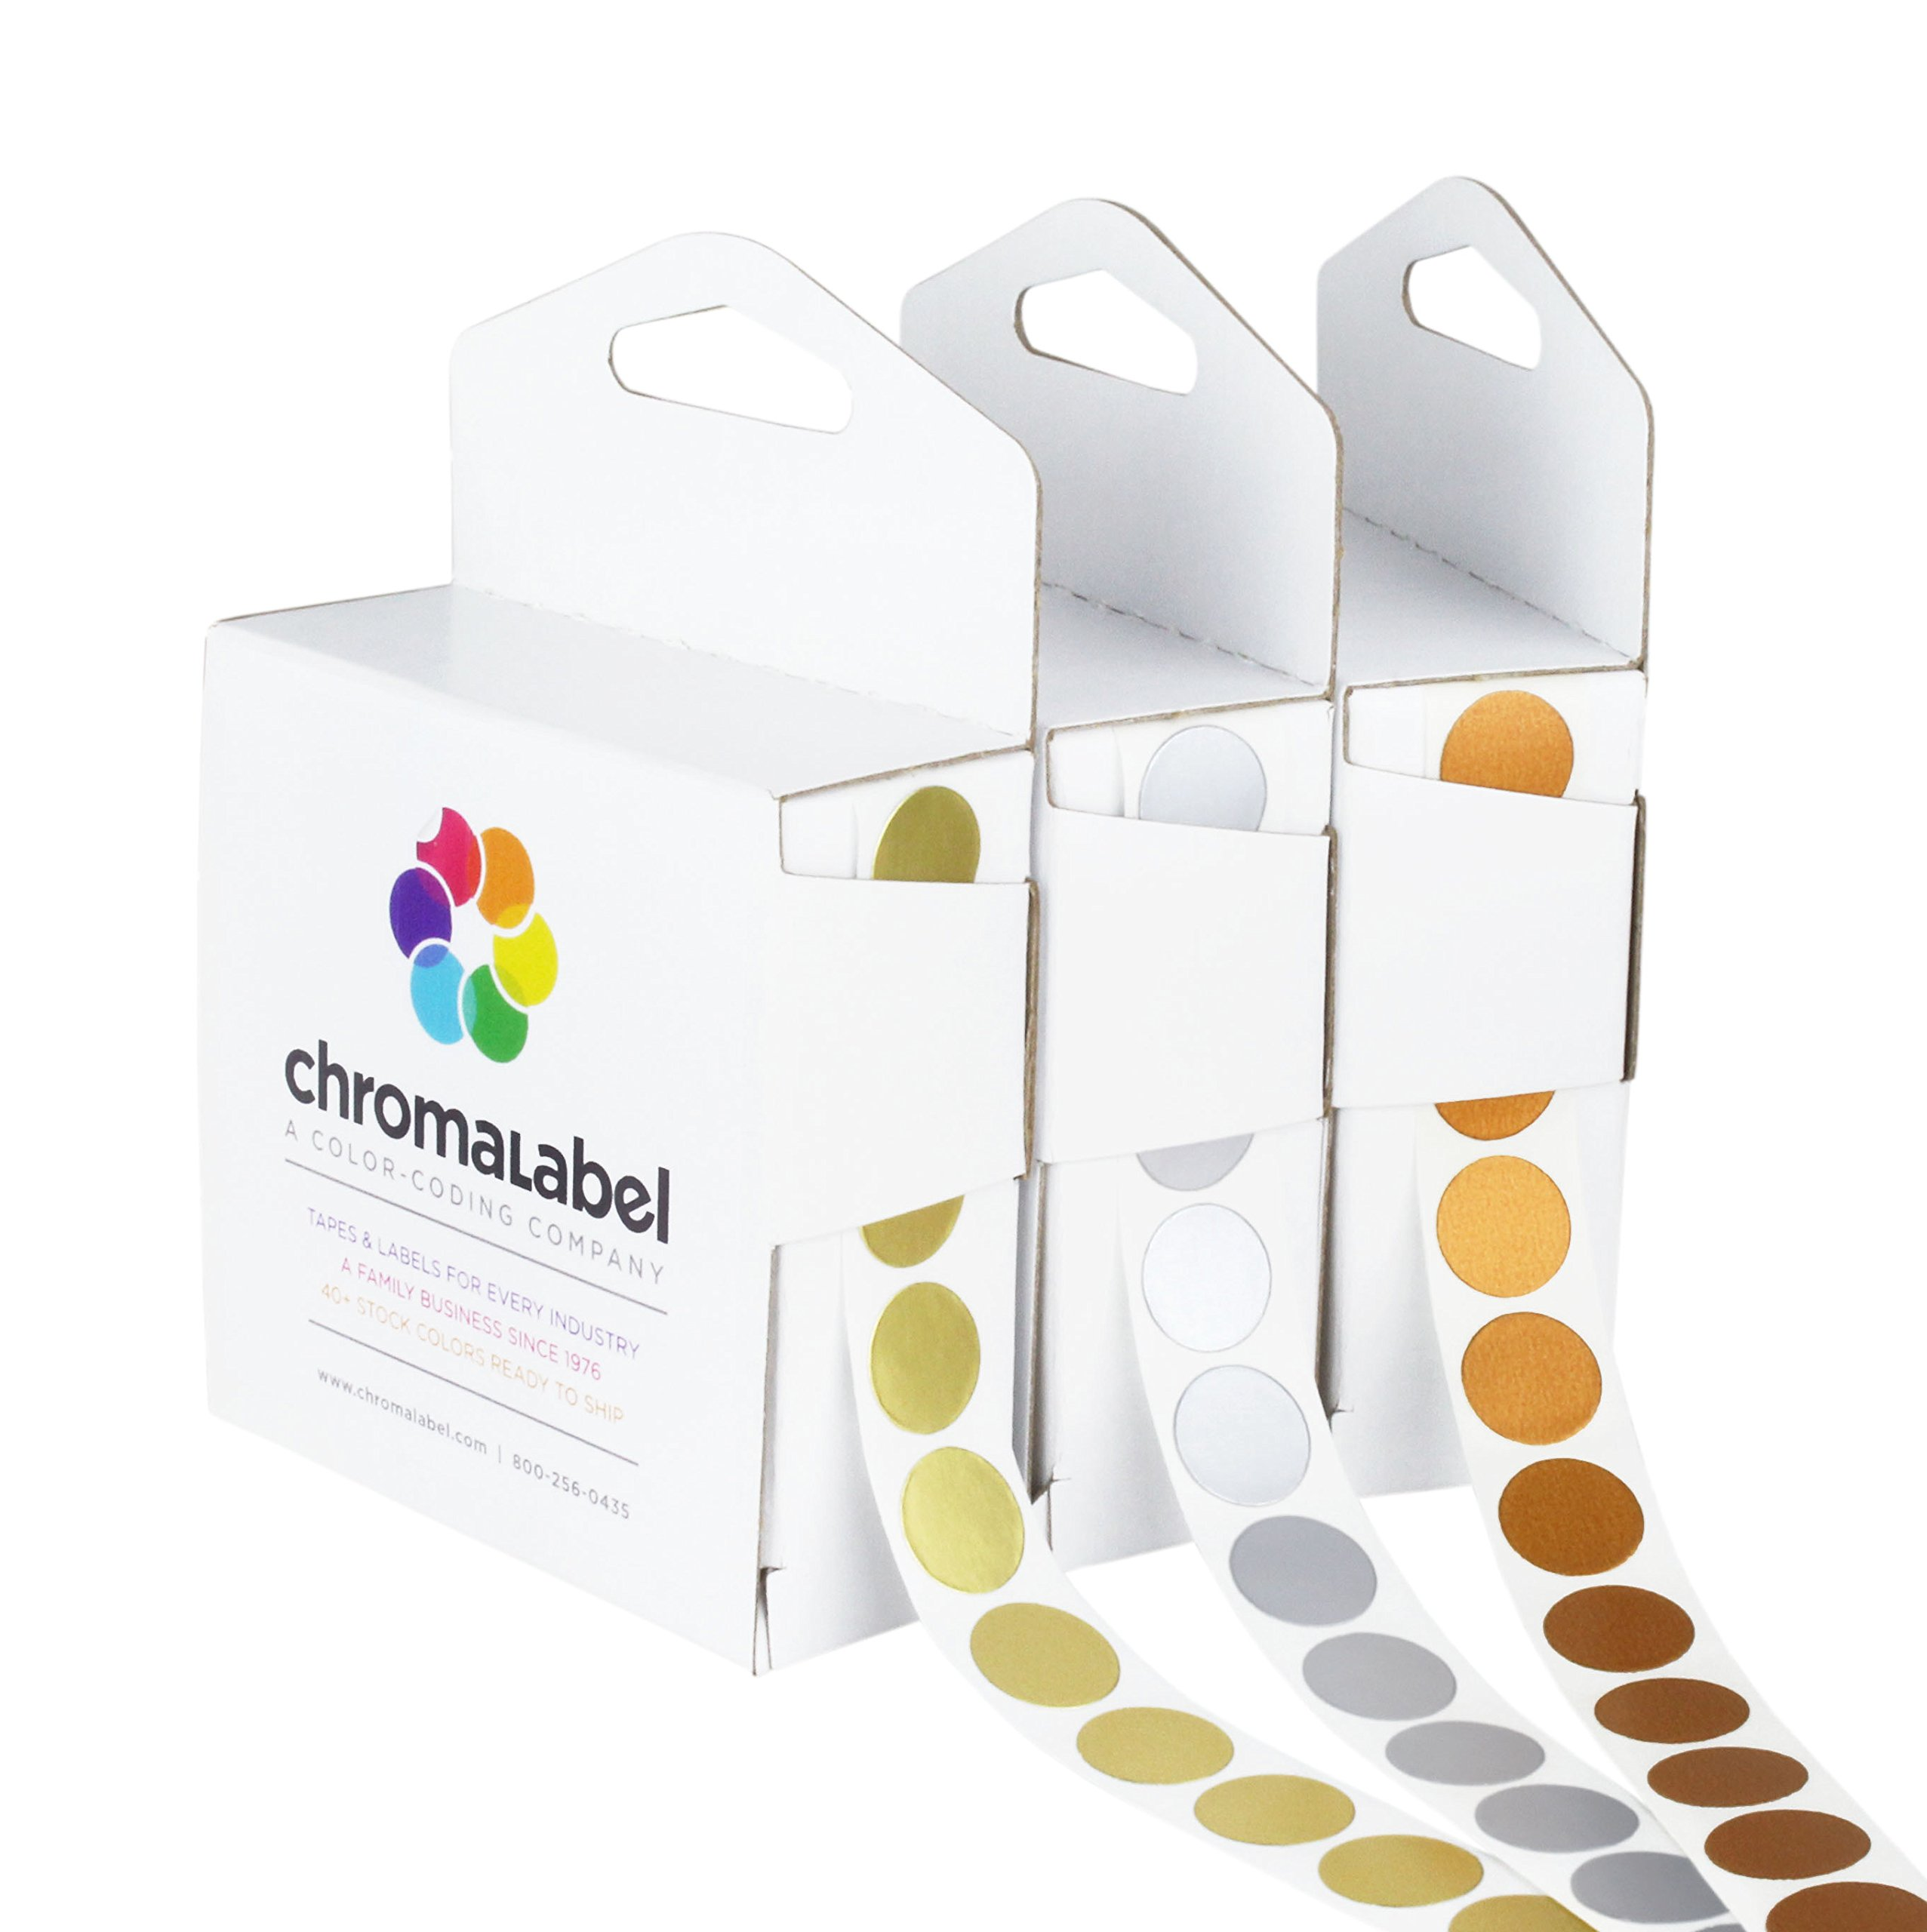 ChromaLabel Metallic Color-Code Dot Label Kit | Assorted Gold, Silver, Bronze | 1,000/Dispenser Box (1/2 inch)